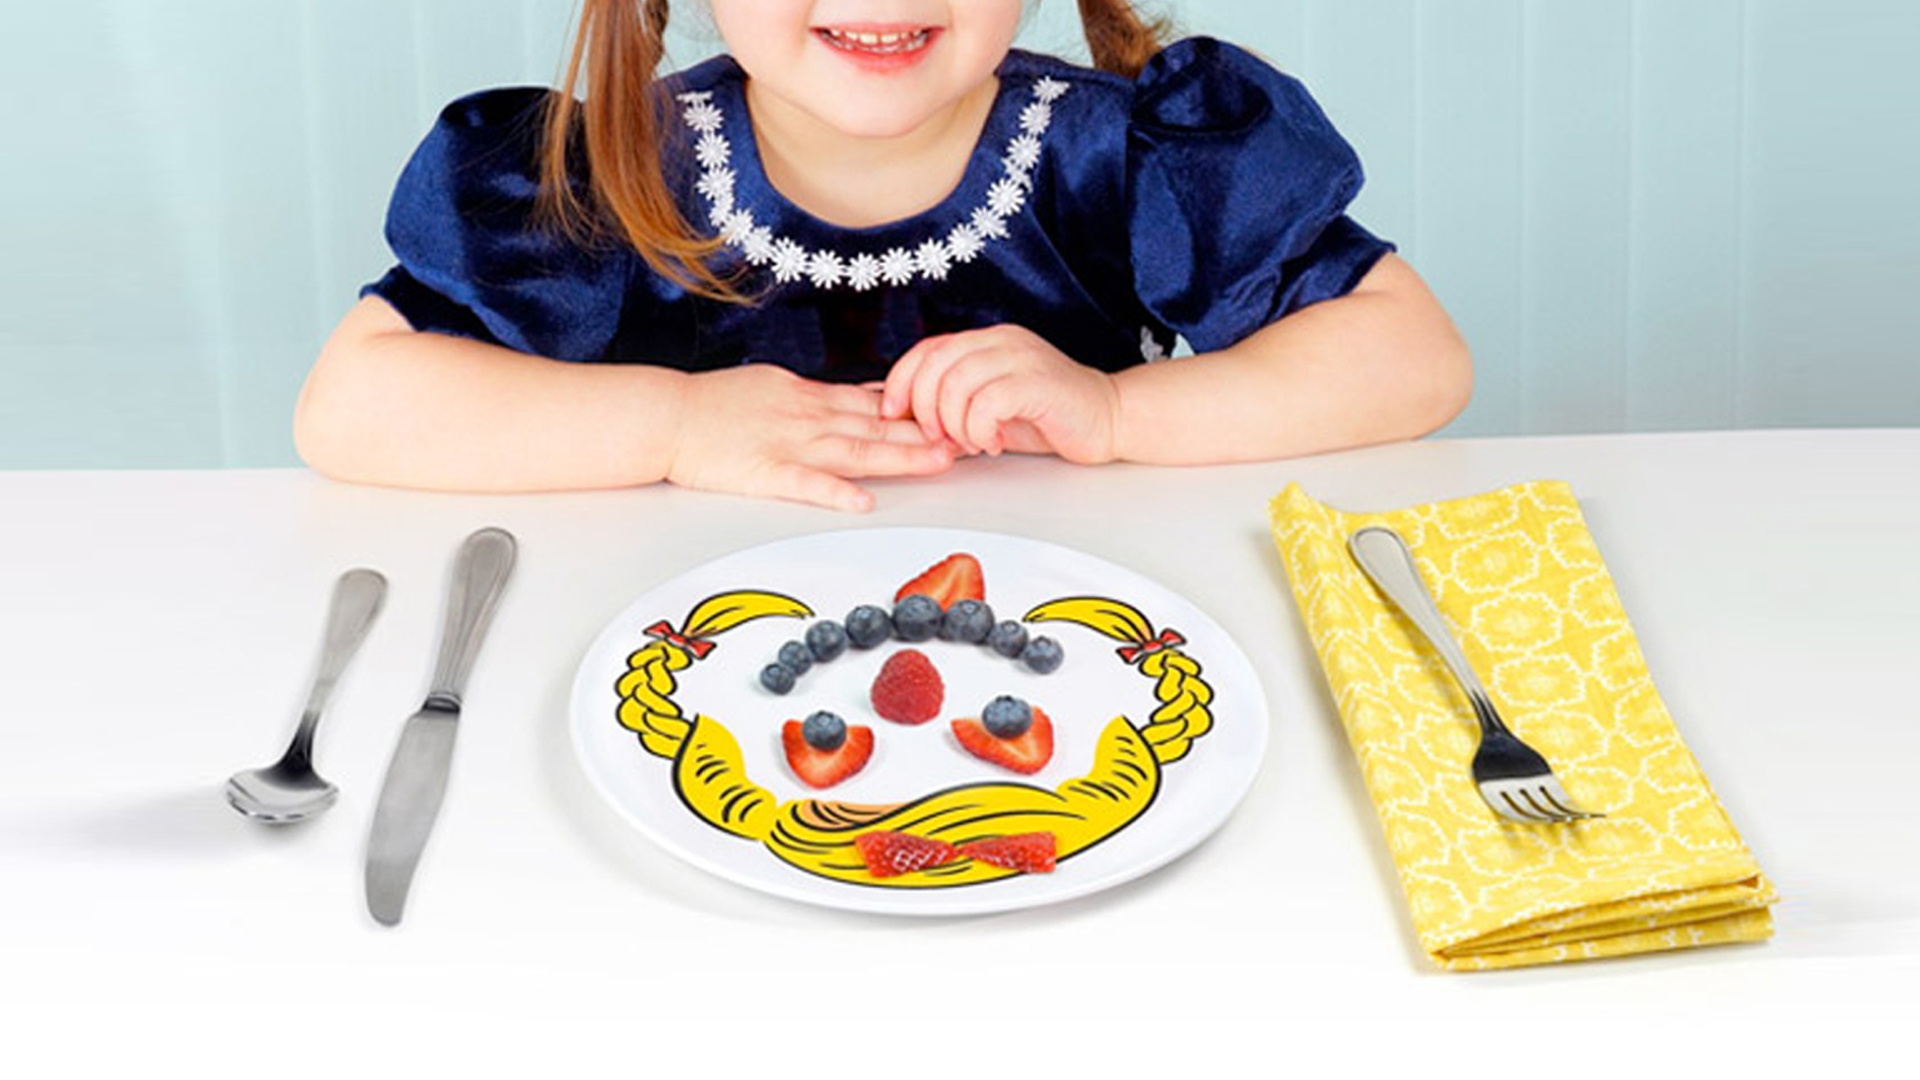 Instagram Worthy Tableware For Kids